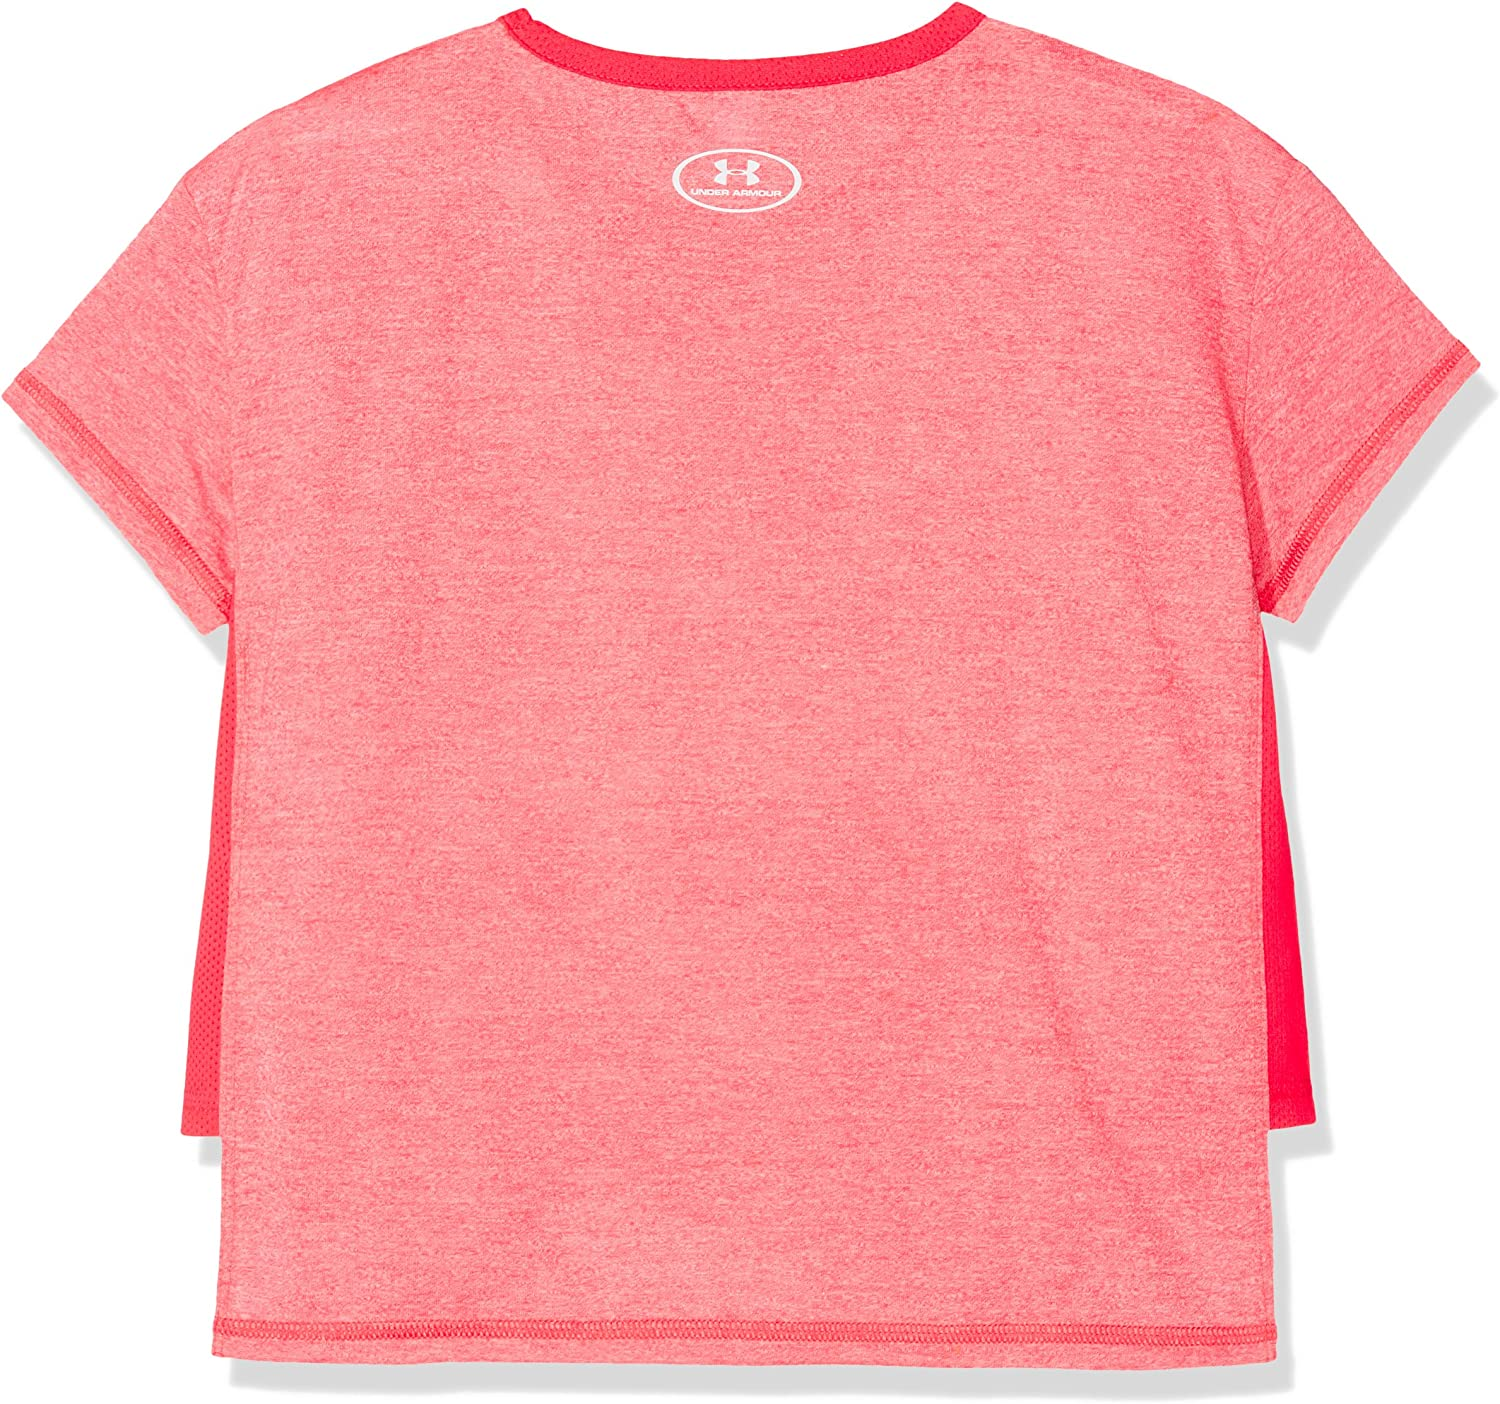 Threadborne Girls Short-Sleeve Shirt